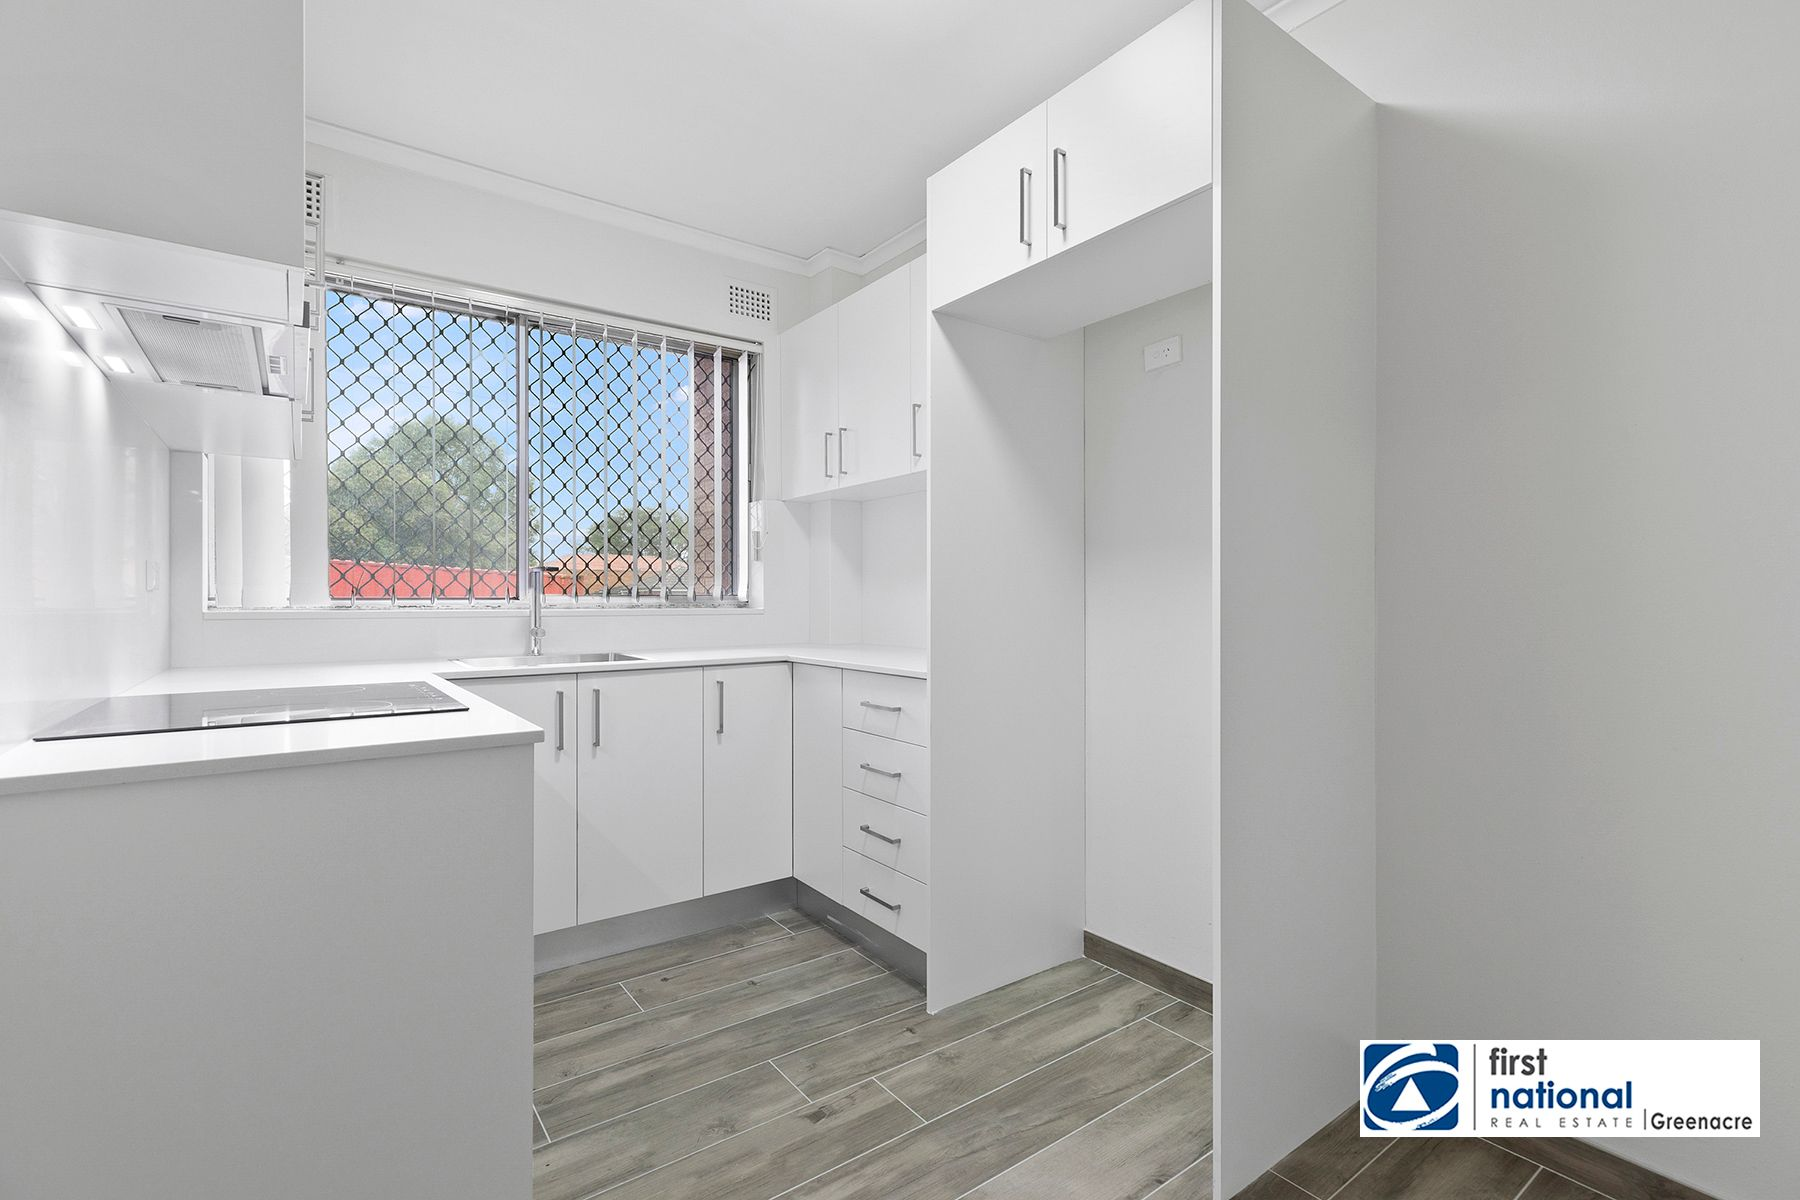 9/278 Lakemba Street, Wiley Park, NSW 2195